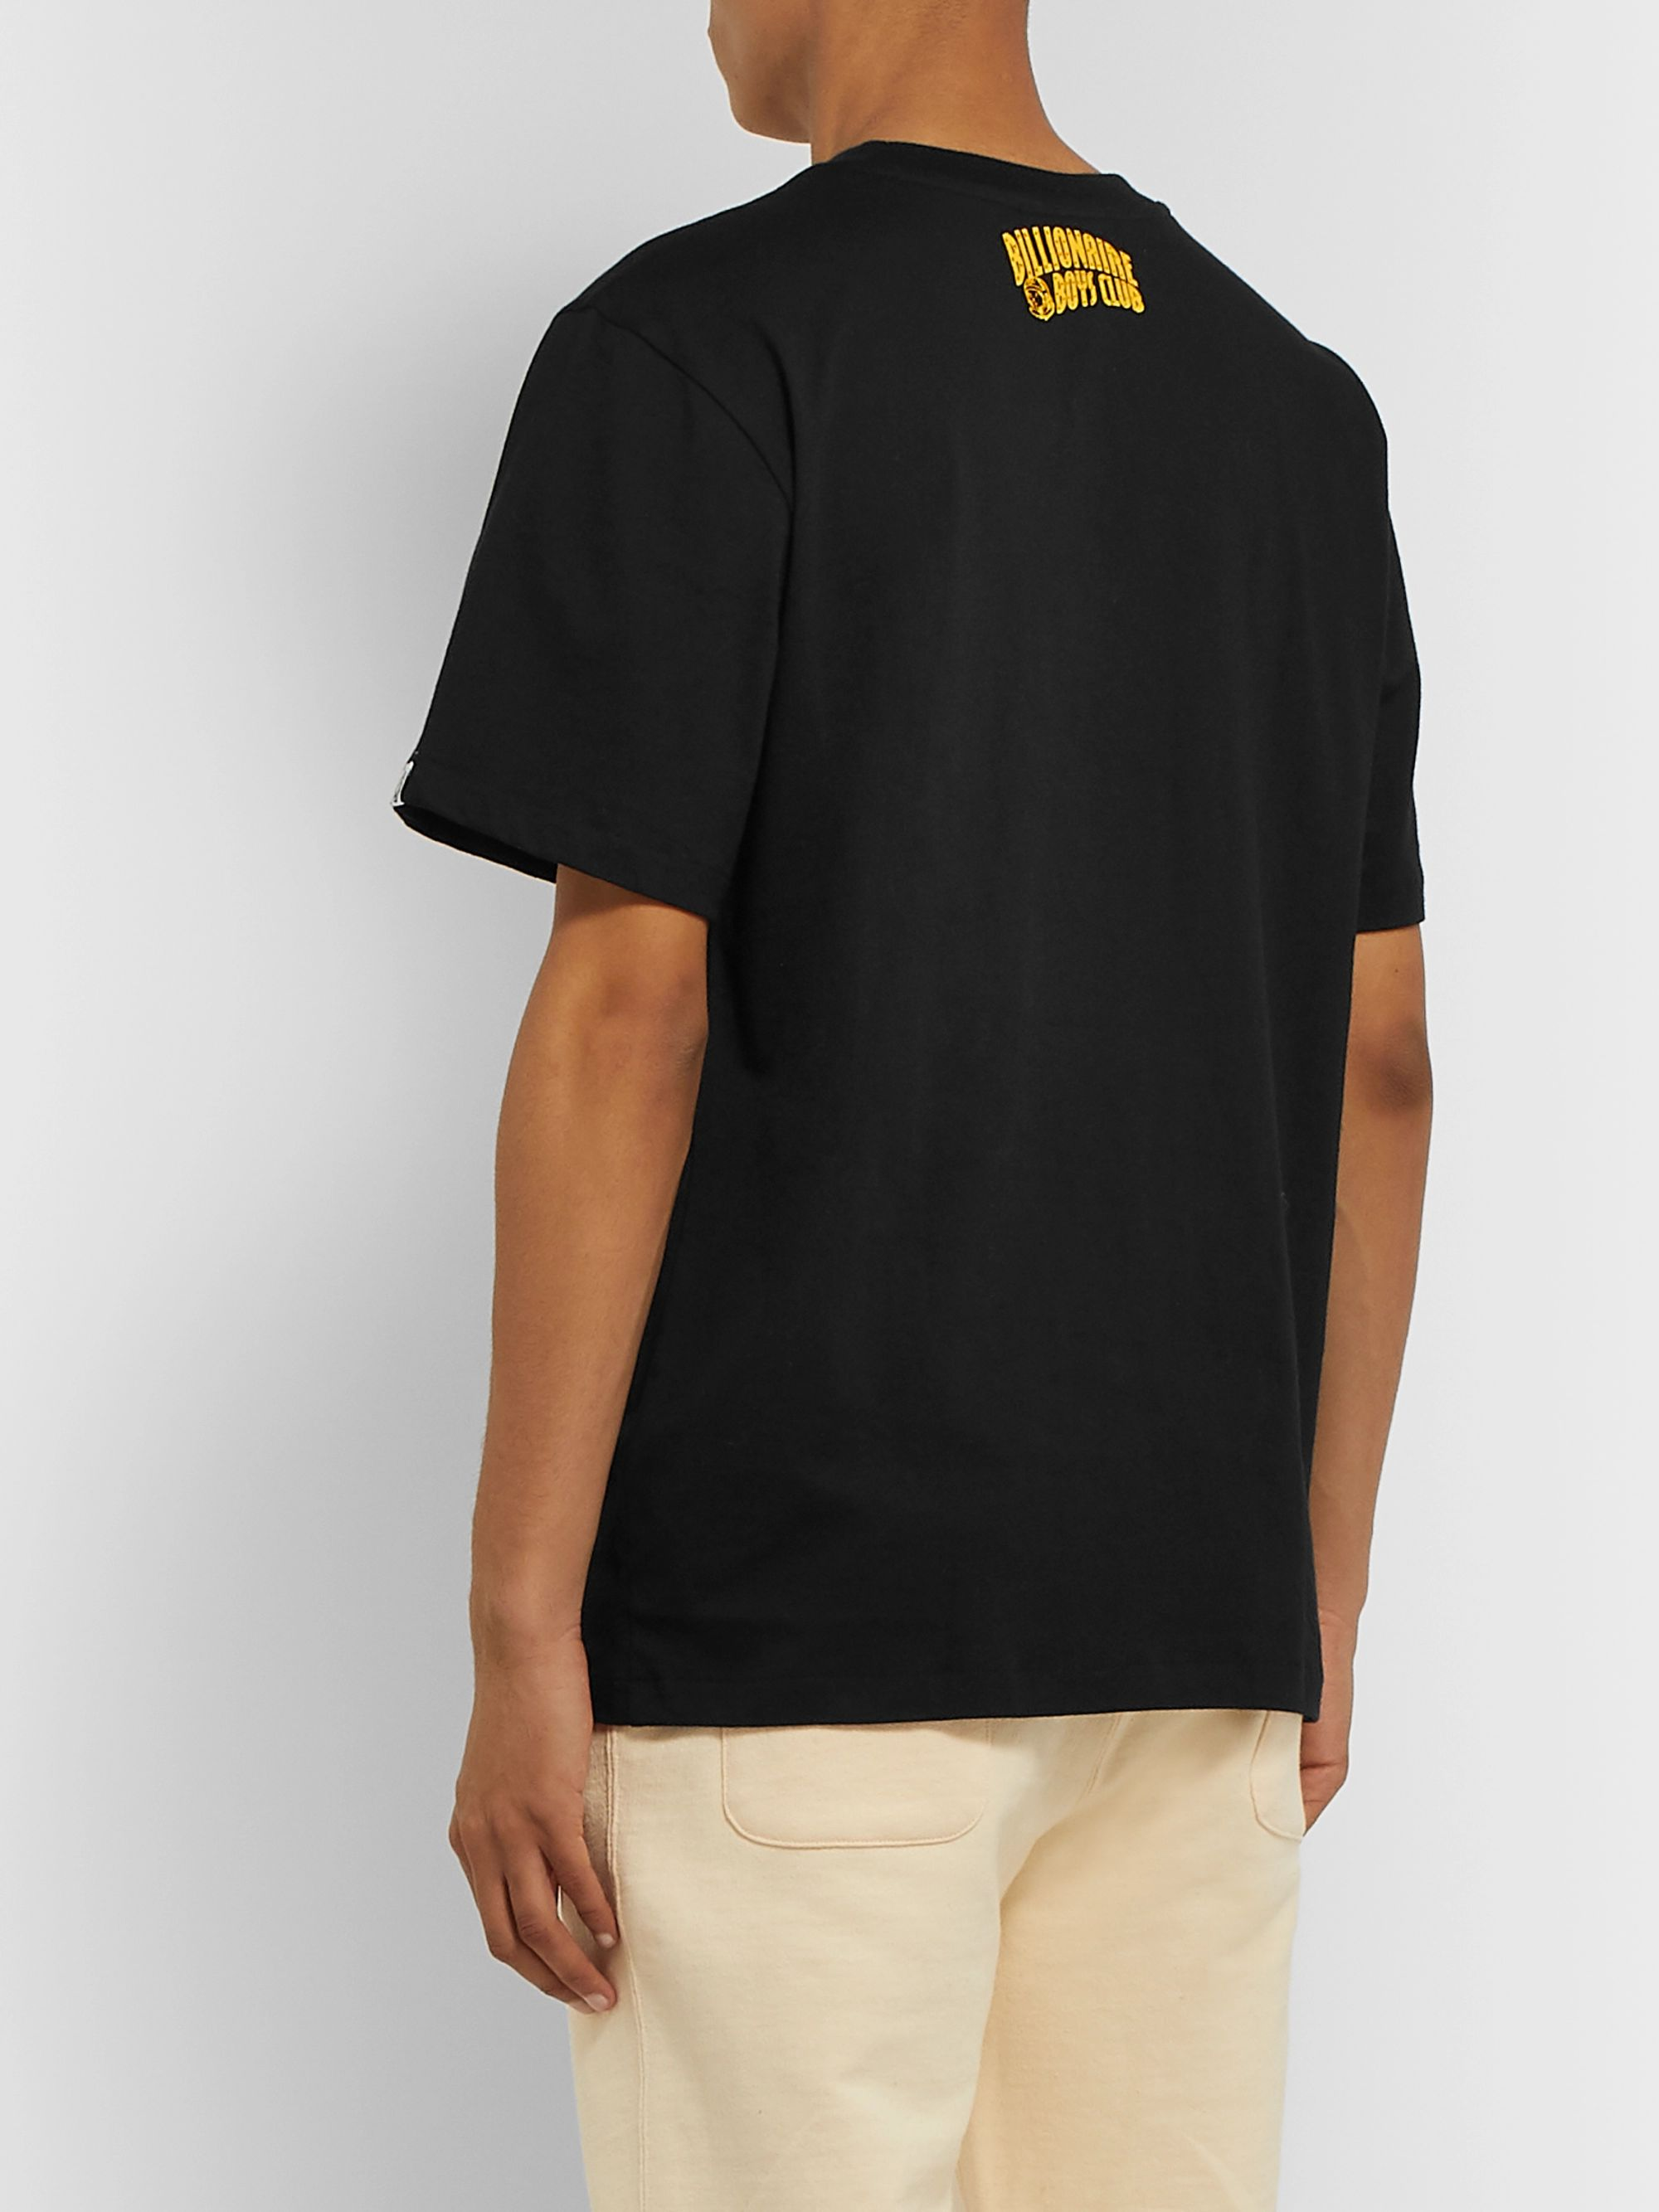 Billionaire Boys Club Printed Cotton-Jersey T-Shirt